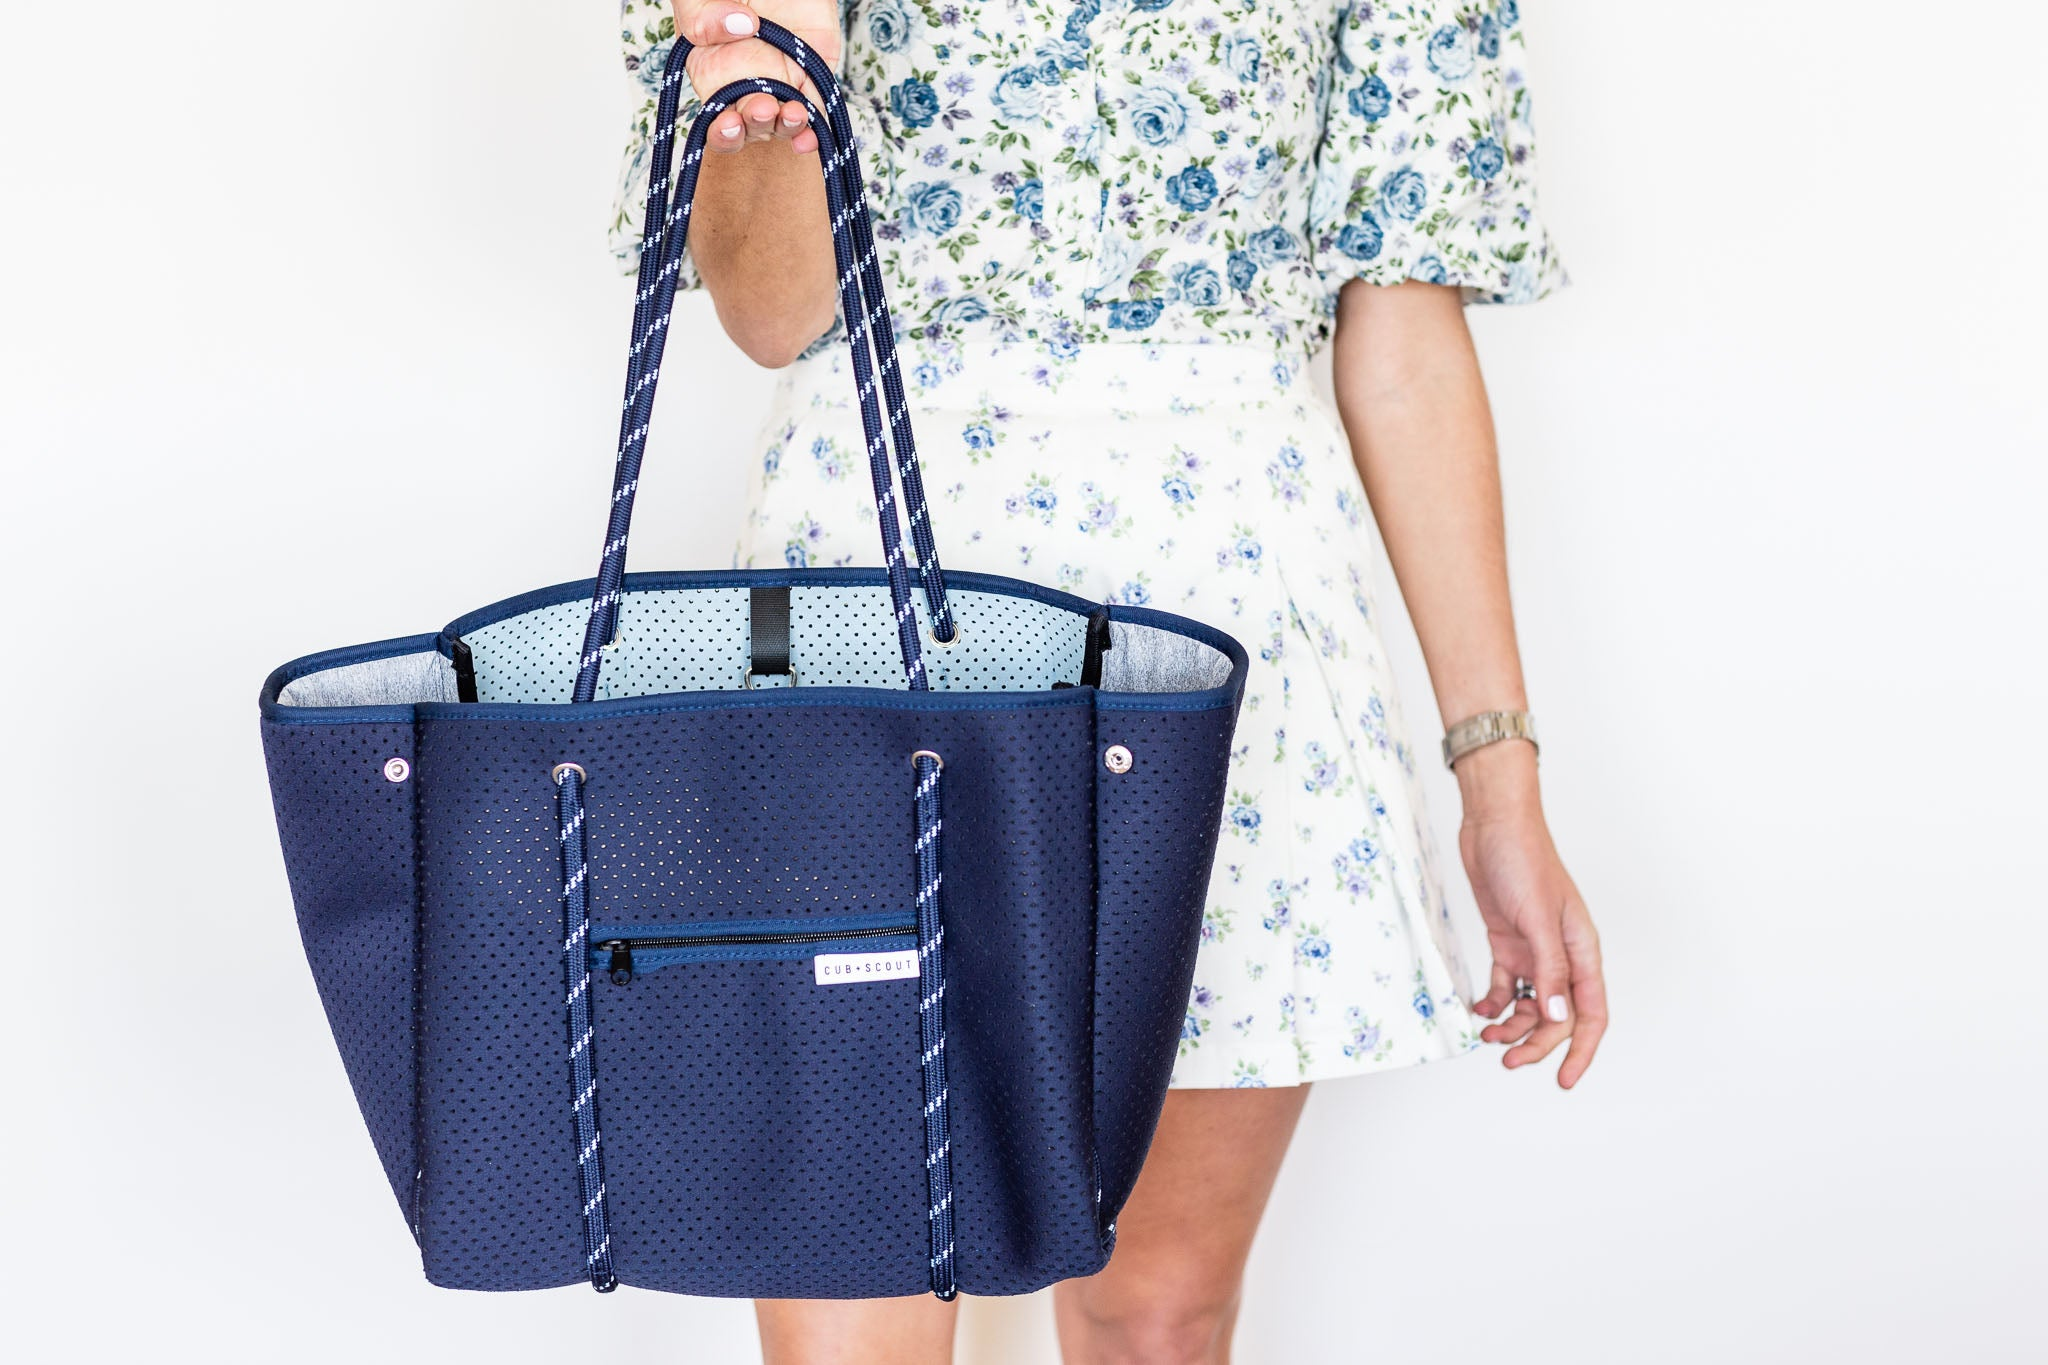 THE LEADER CARRYALL - THE ROYAL